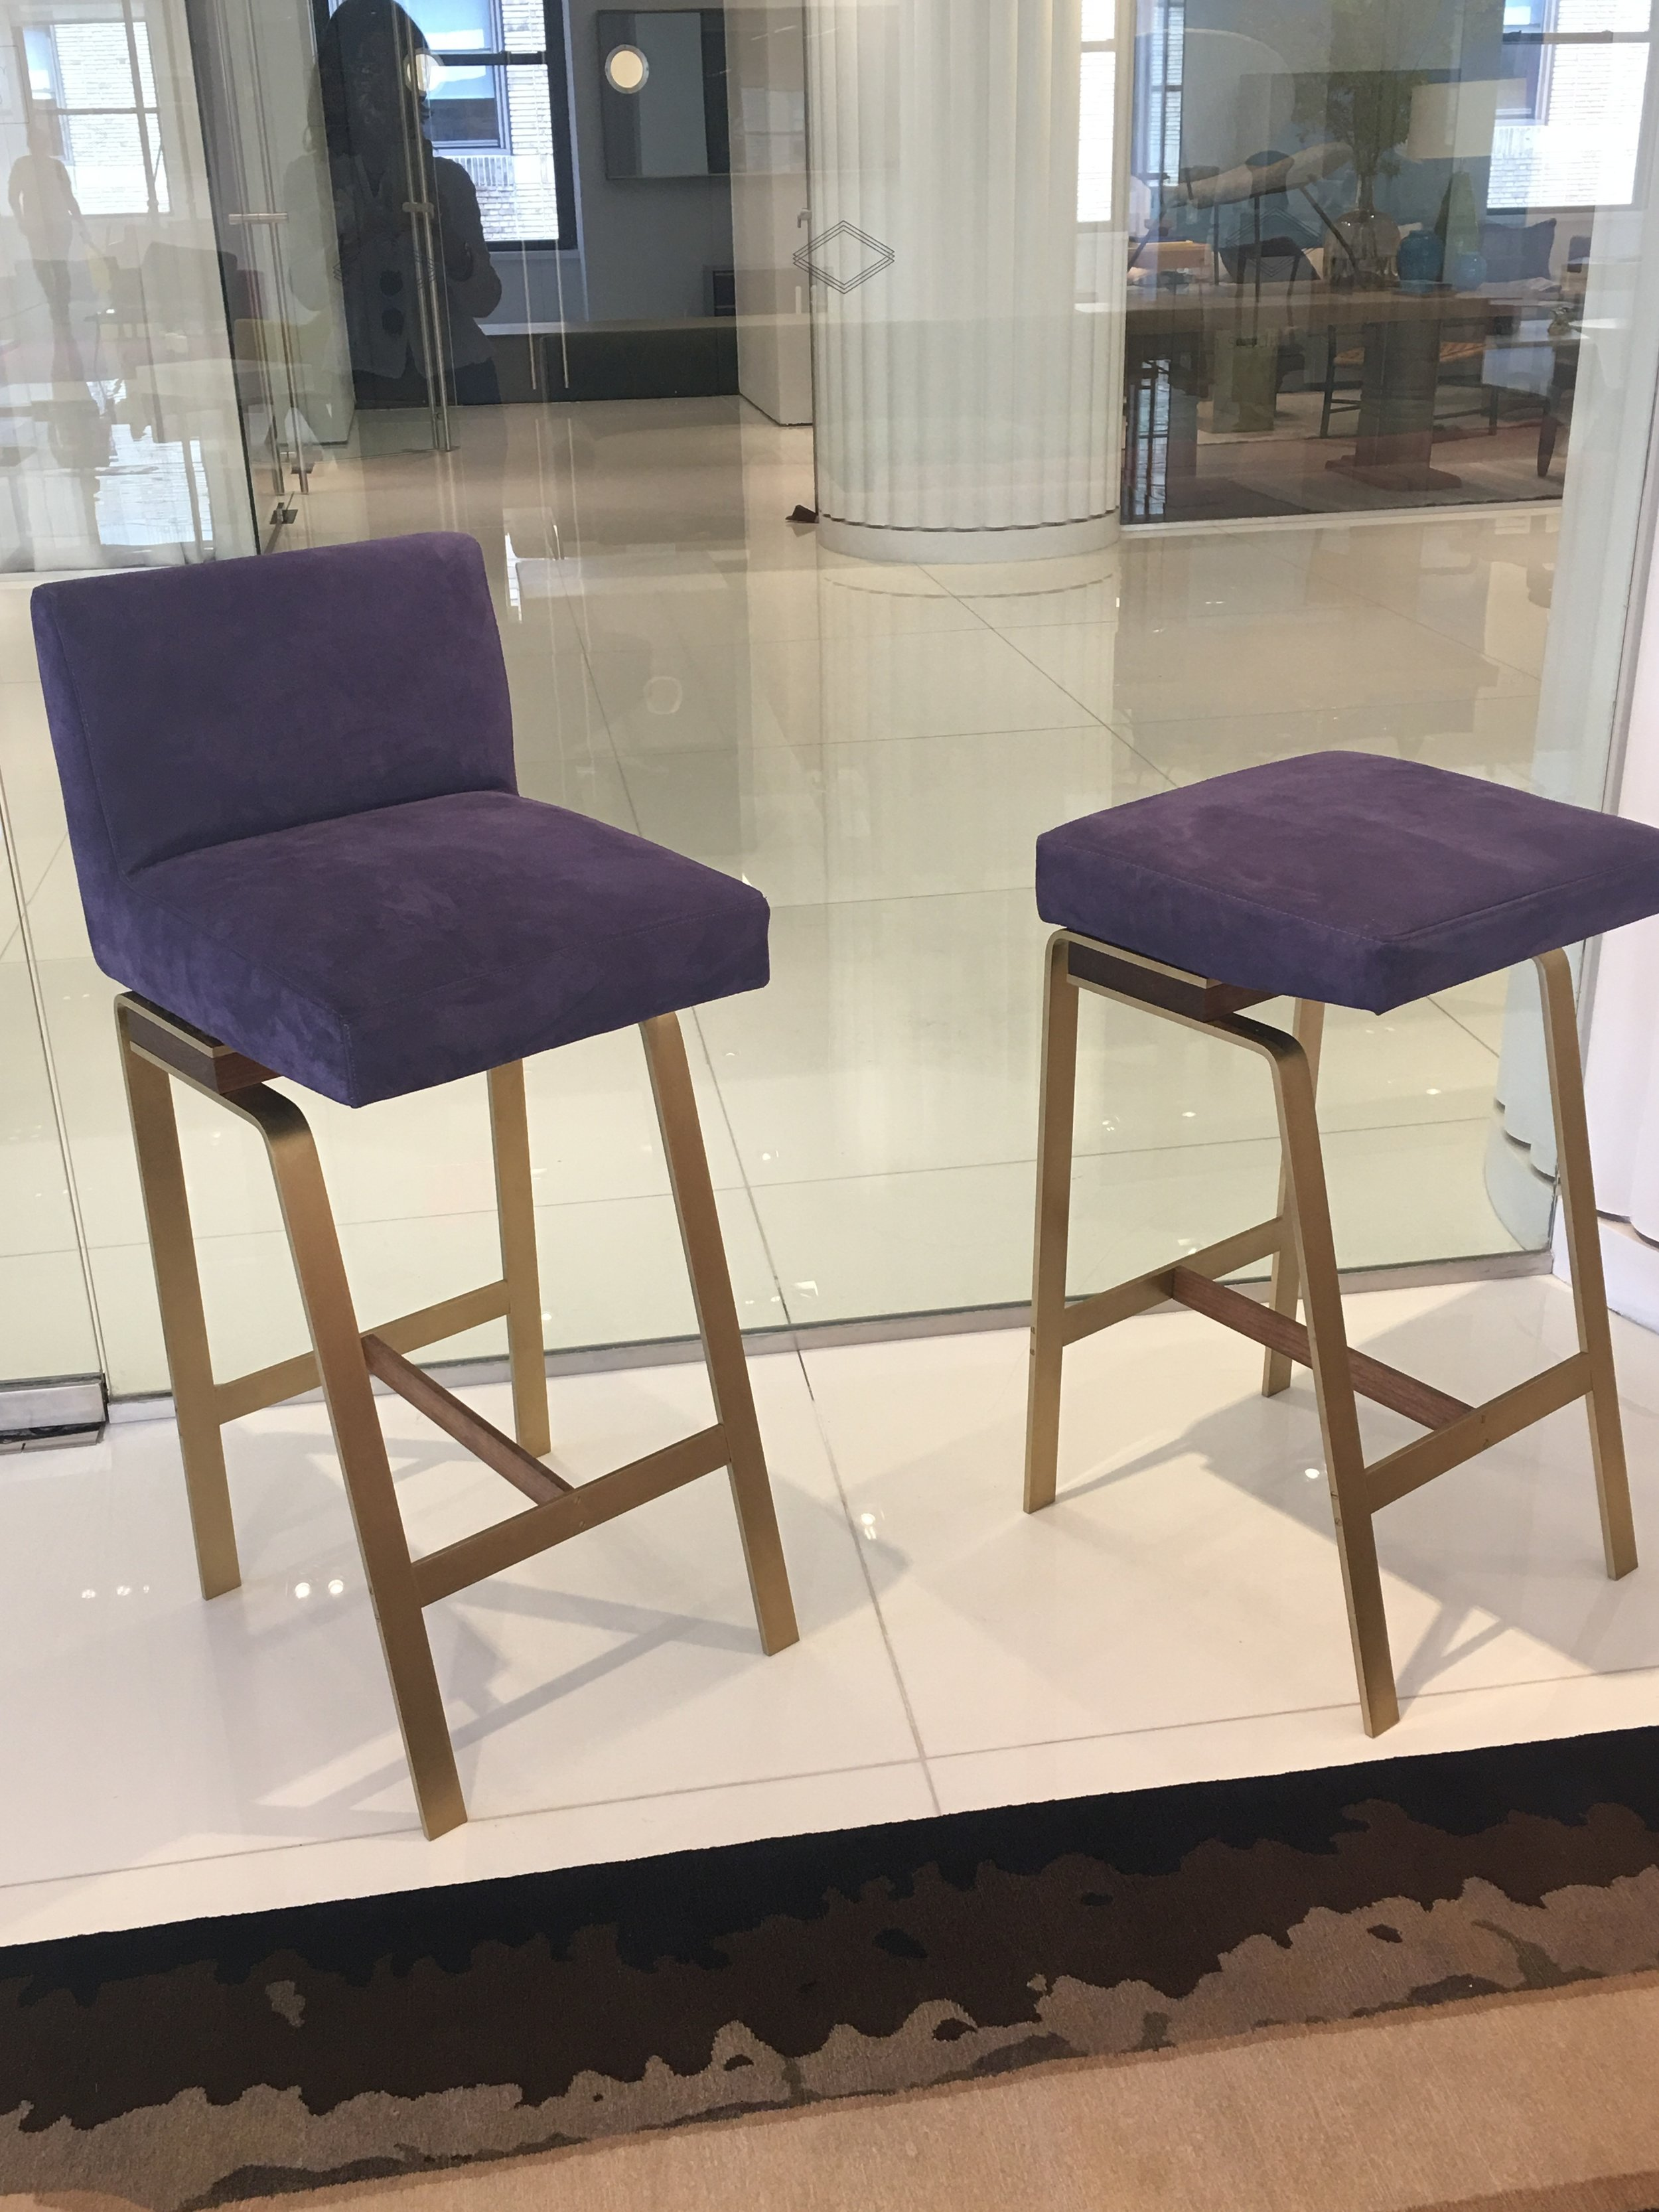 PURPLE STOOL AT KGBL SHOWROOM - 200 LEX